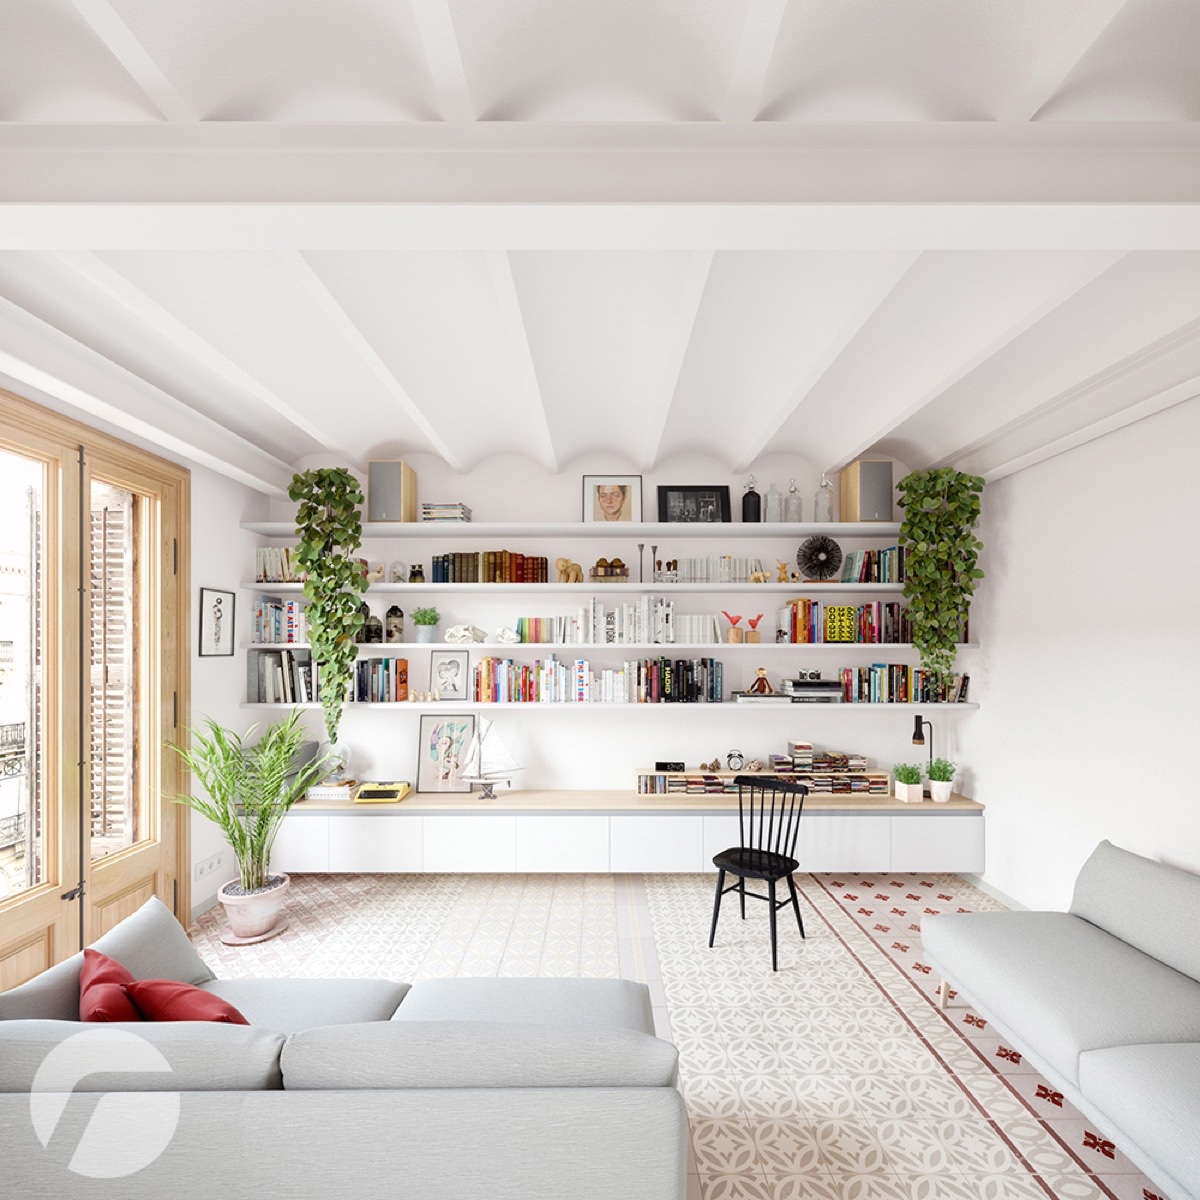 Home Interior Design: 10 Stunning Apartments That Show Off The Beauty Of Nordic Interior Design